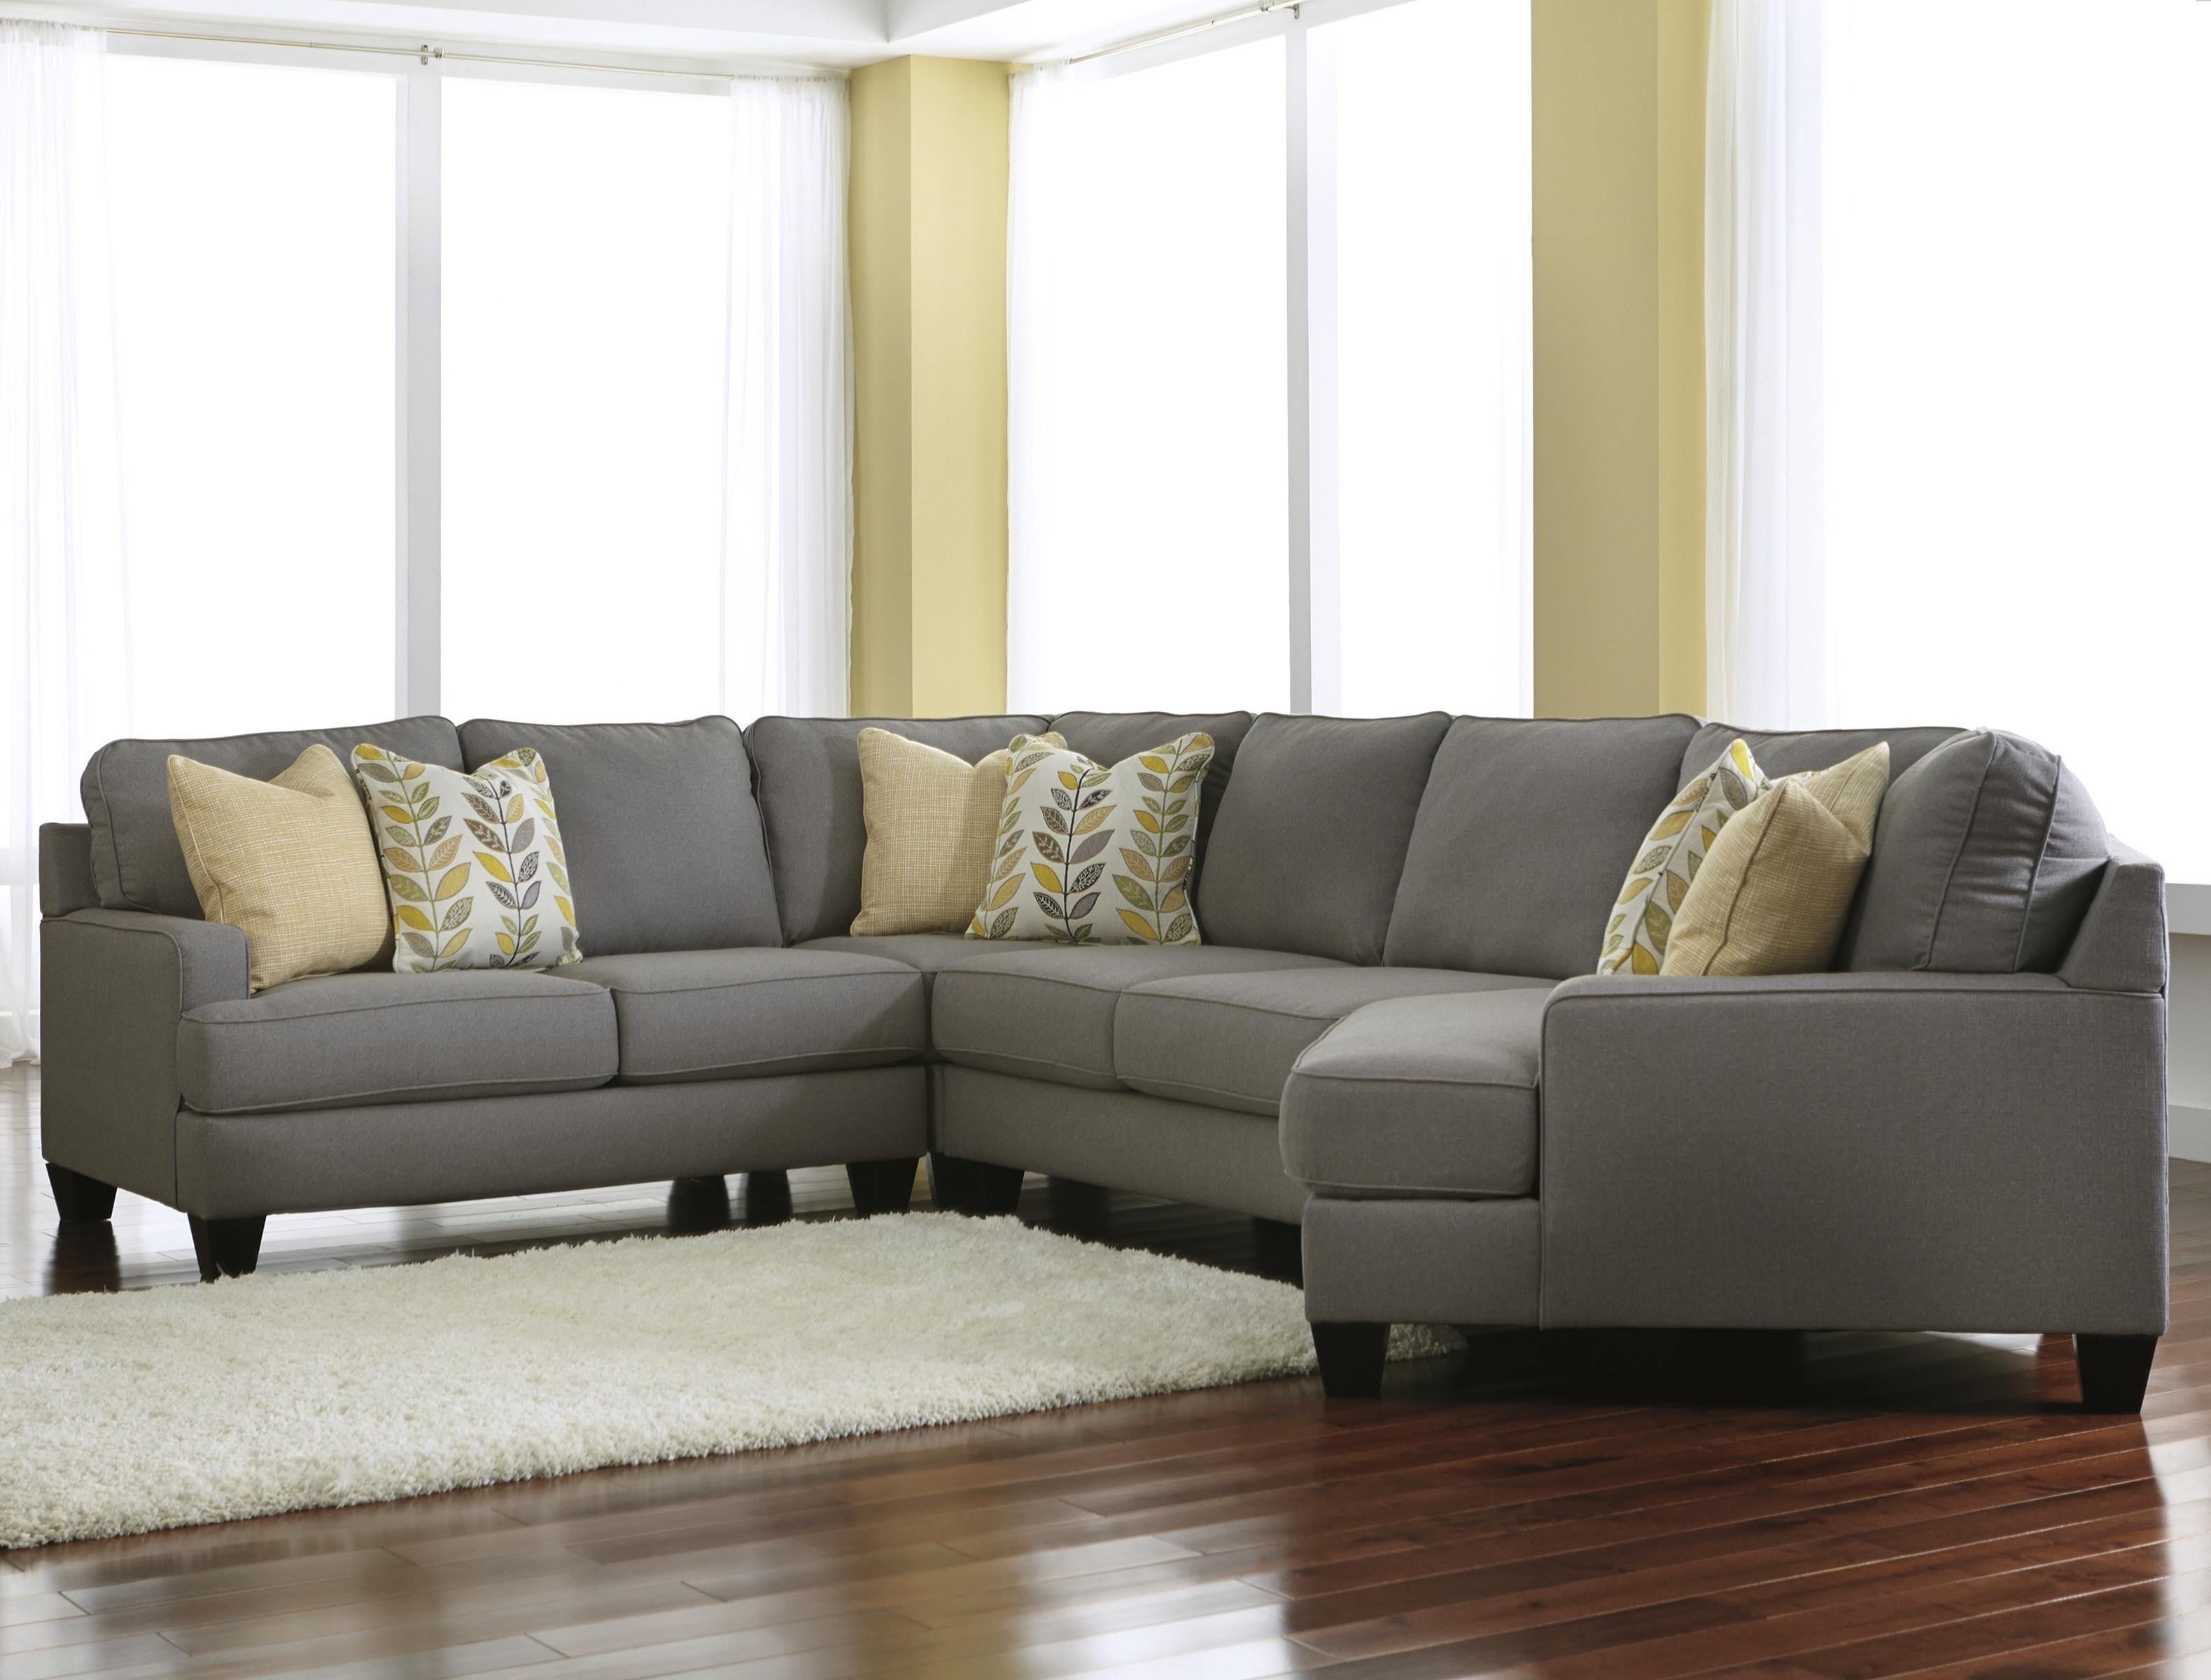 Modern 4 Piece Sectional Sofa With Right Cuddler & Reversible Seat Throughout Harrisburg Pa Sectional Sofas (View 3 of 10)